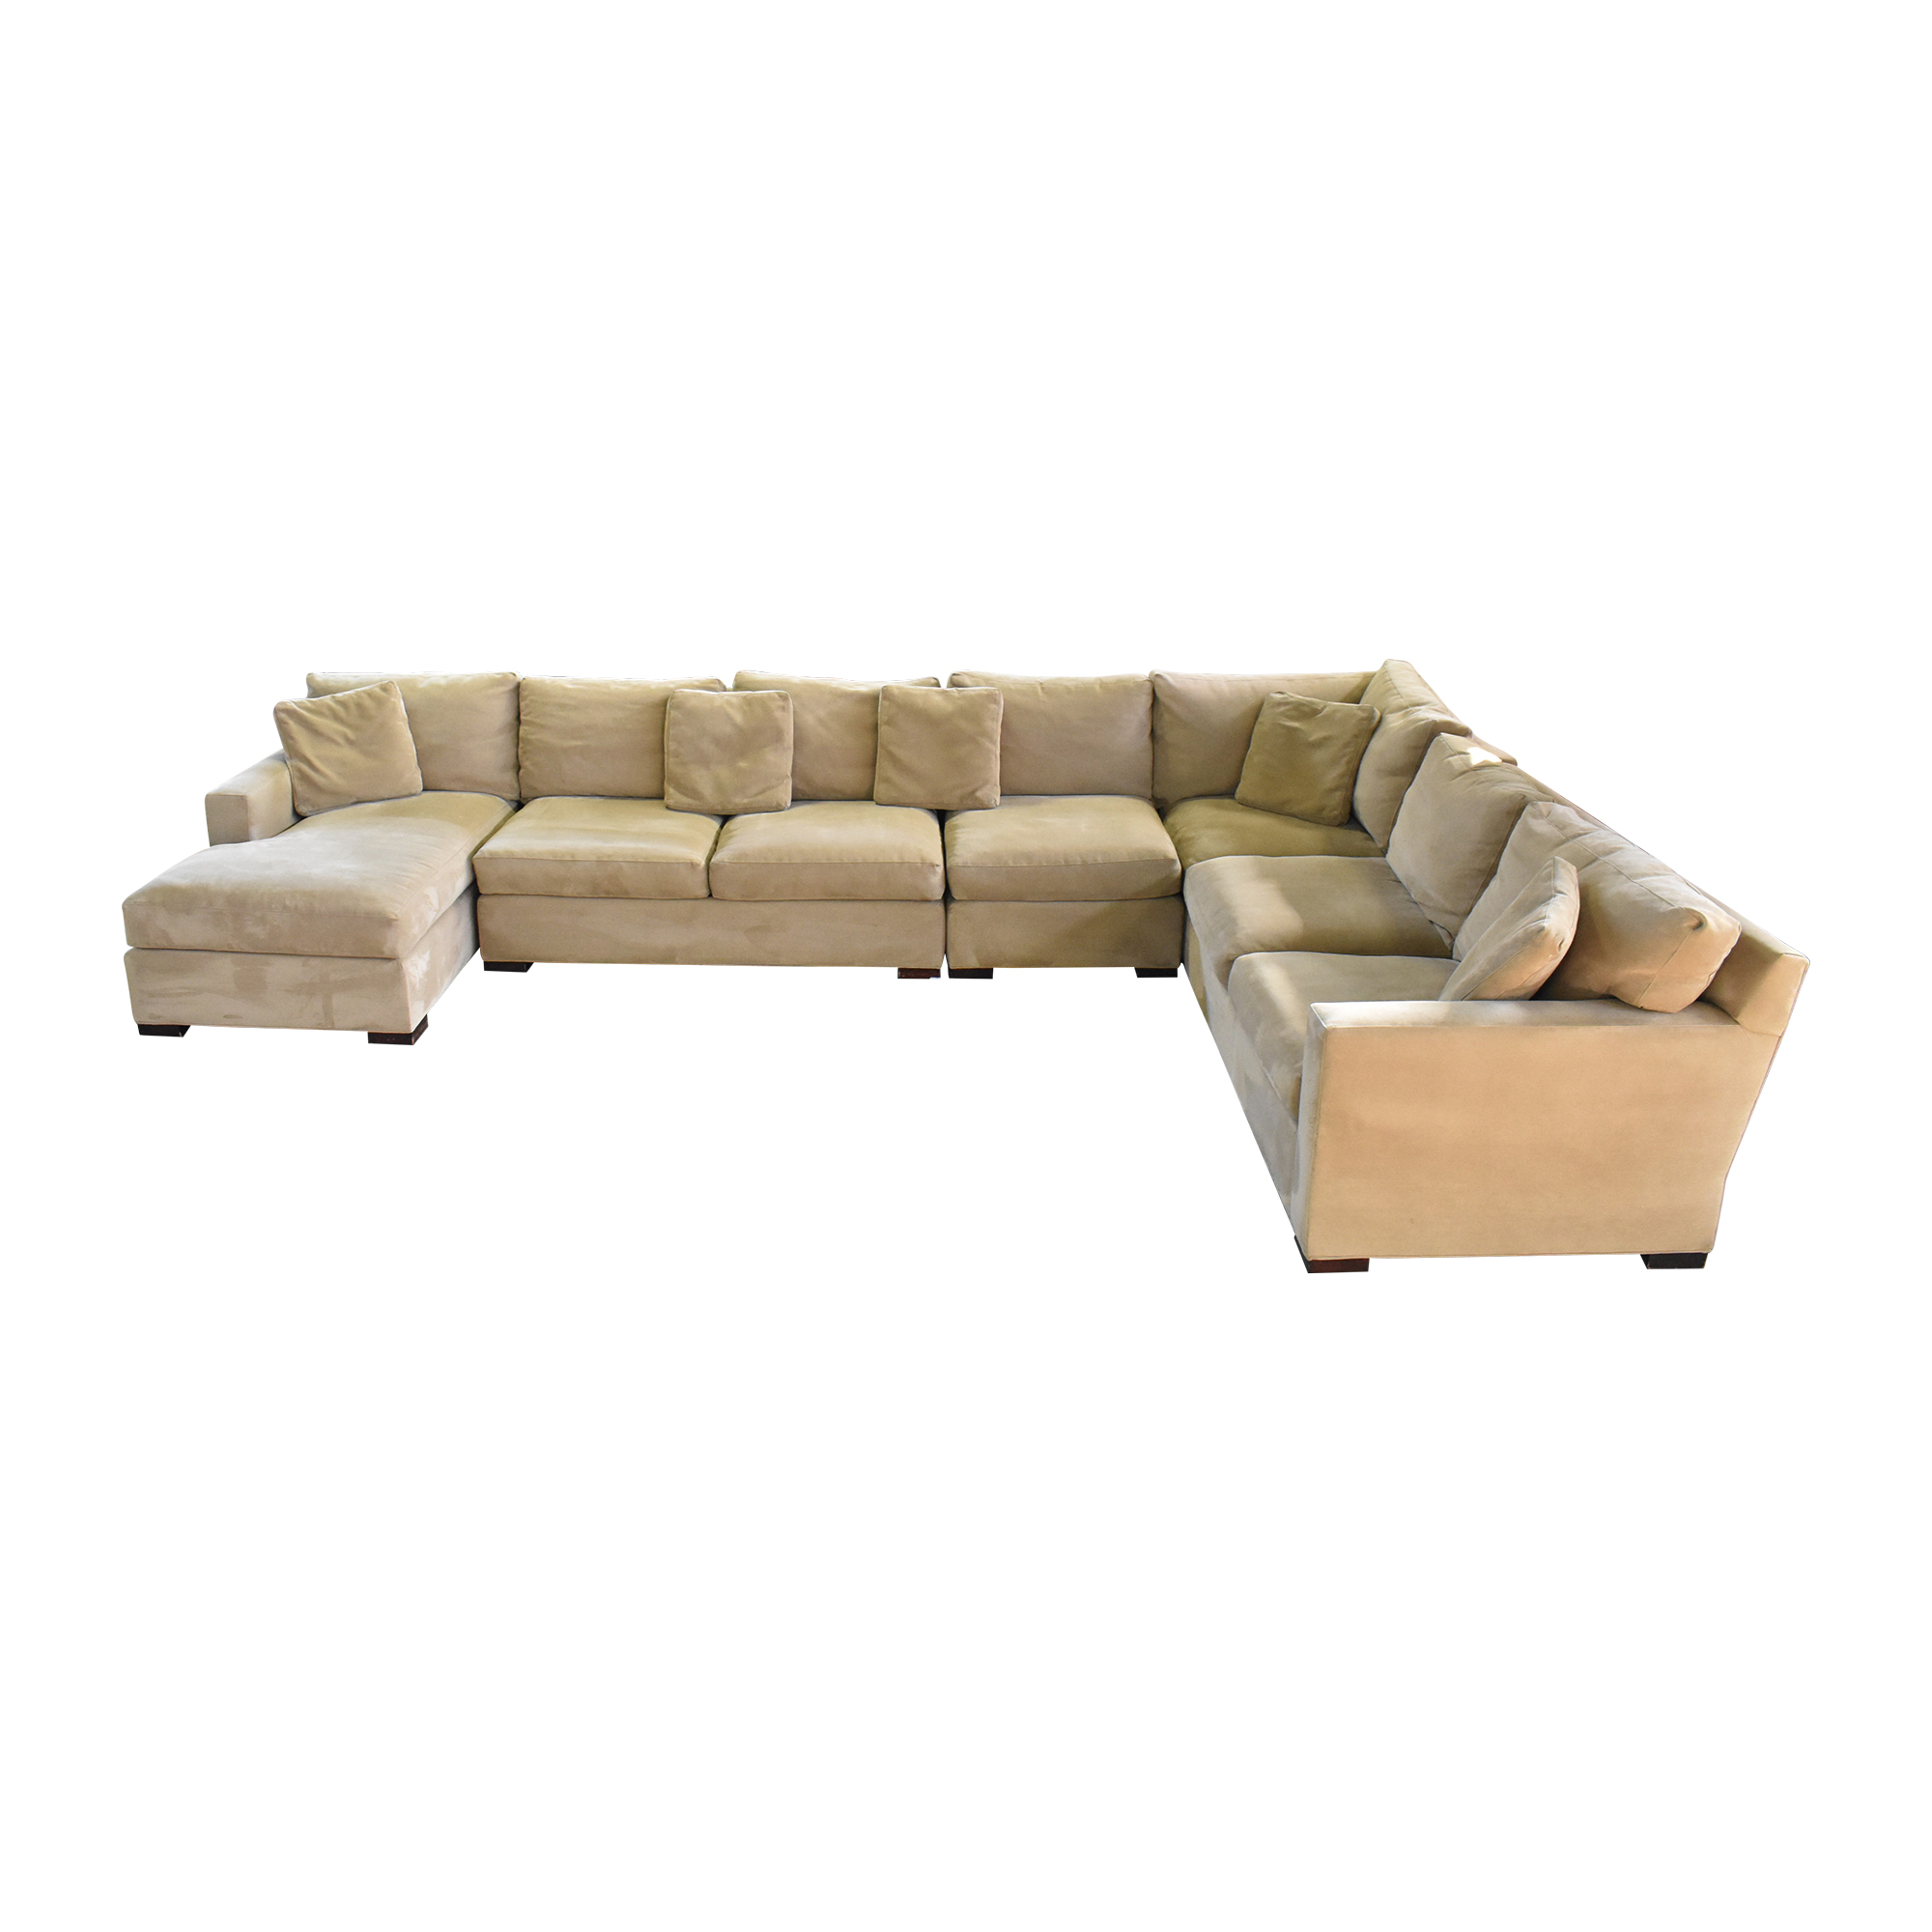 Crate & Barrel Crate & Barrel Axis Sectional Sofa with Chaise beige